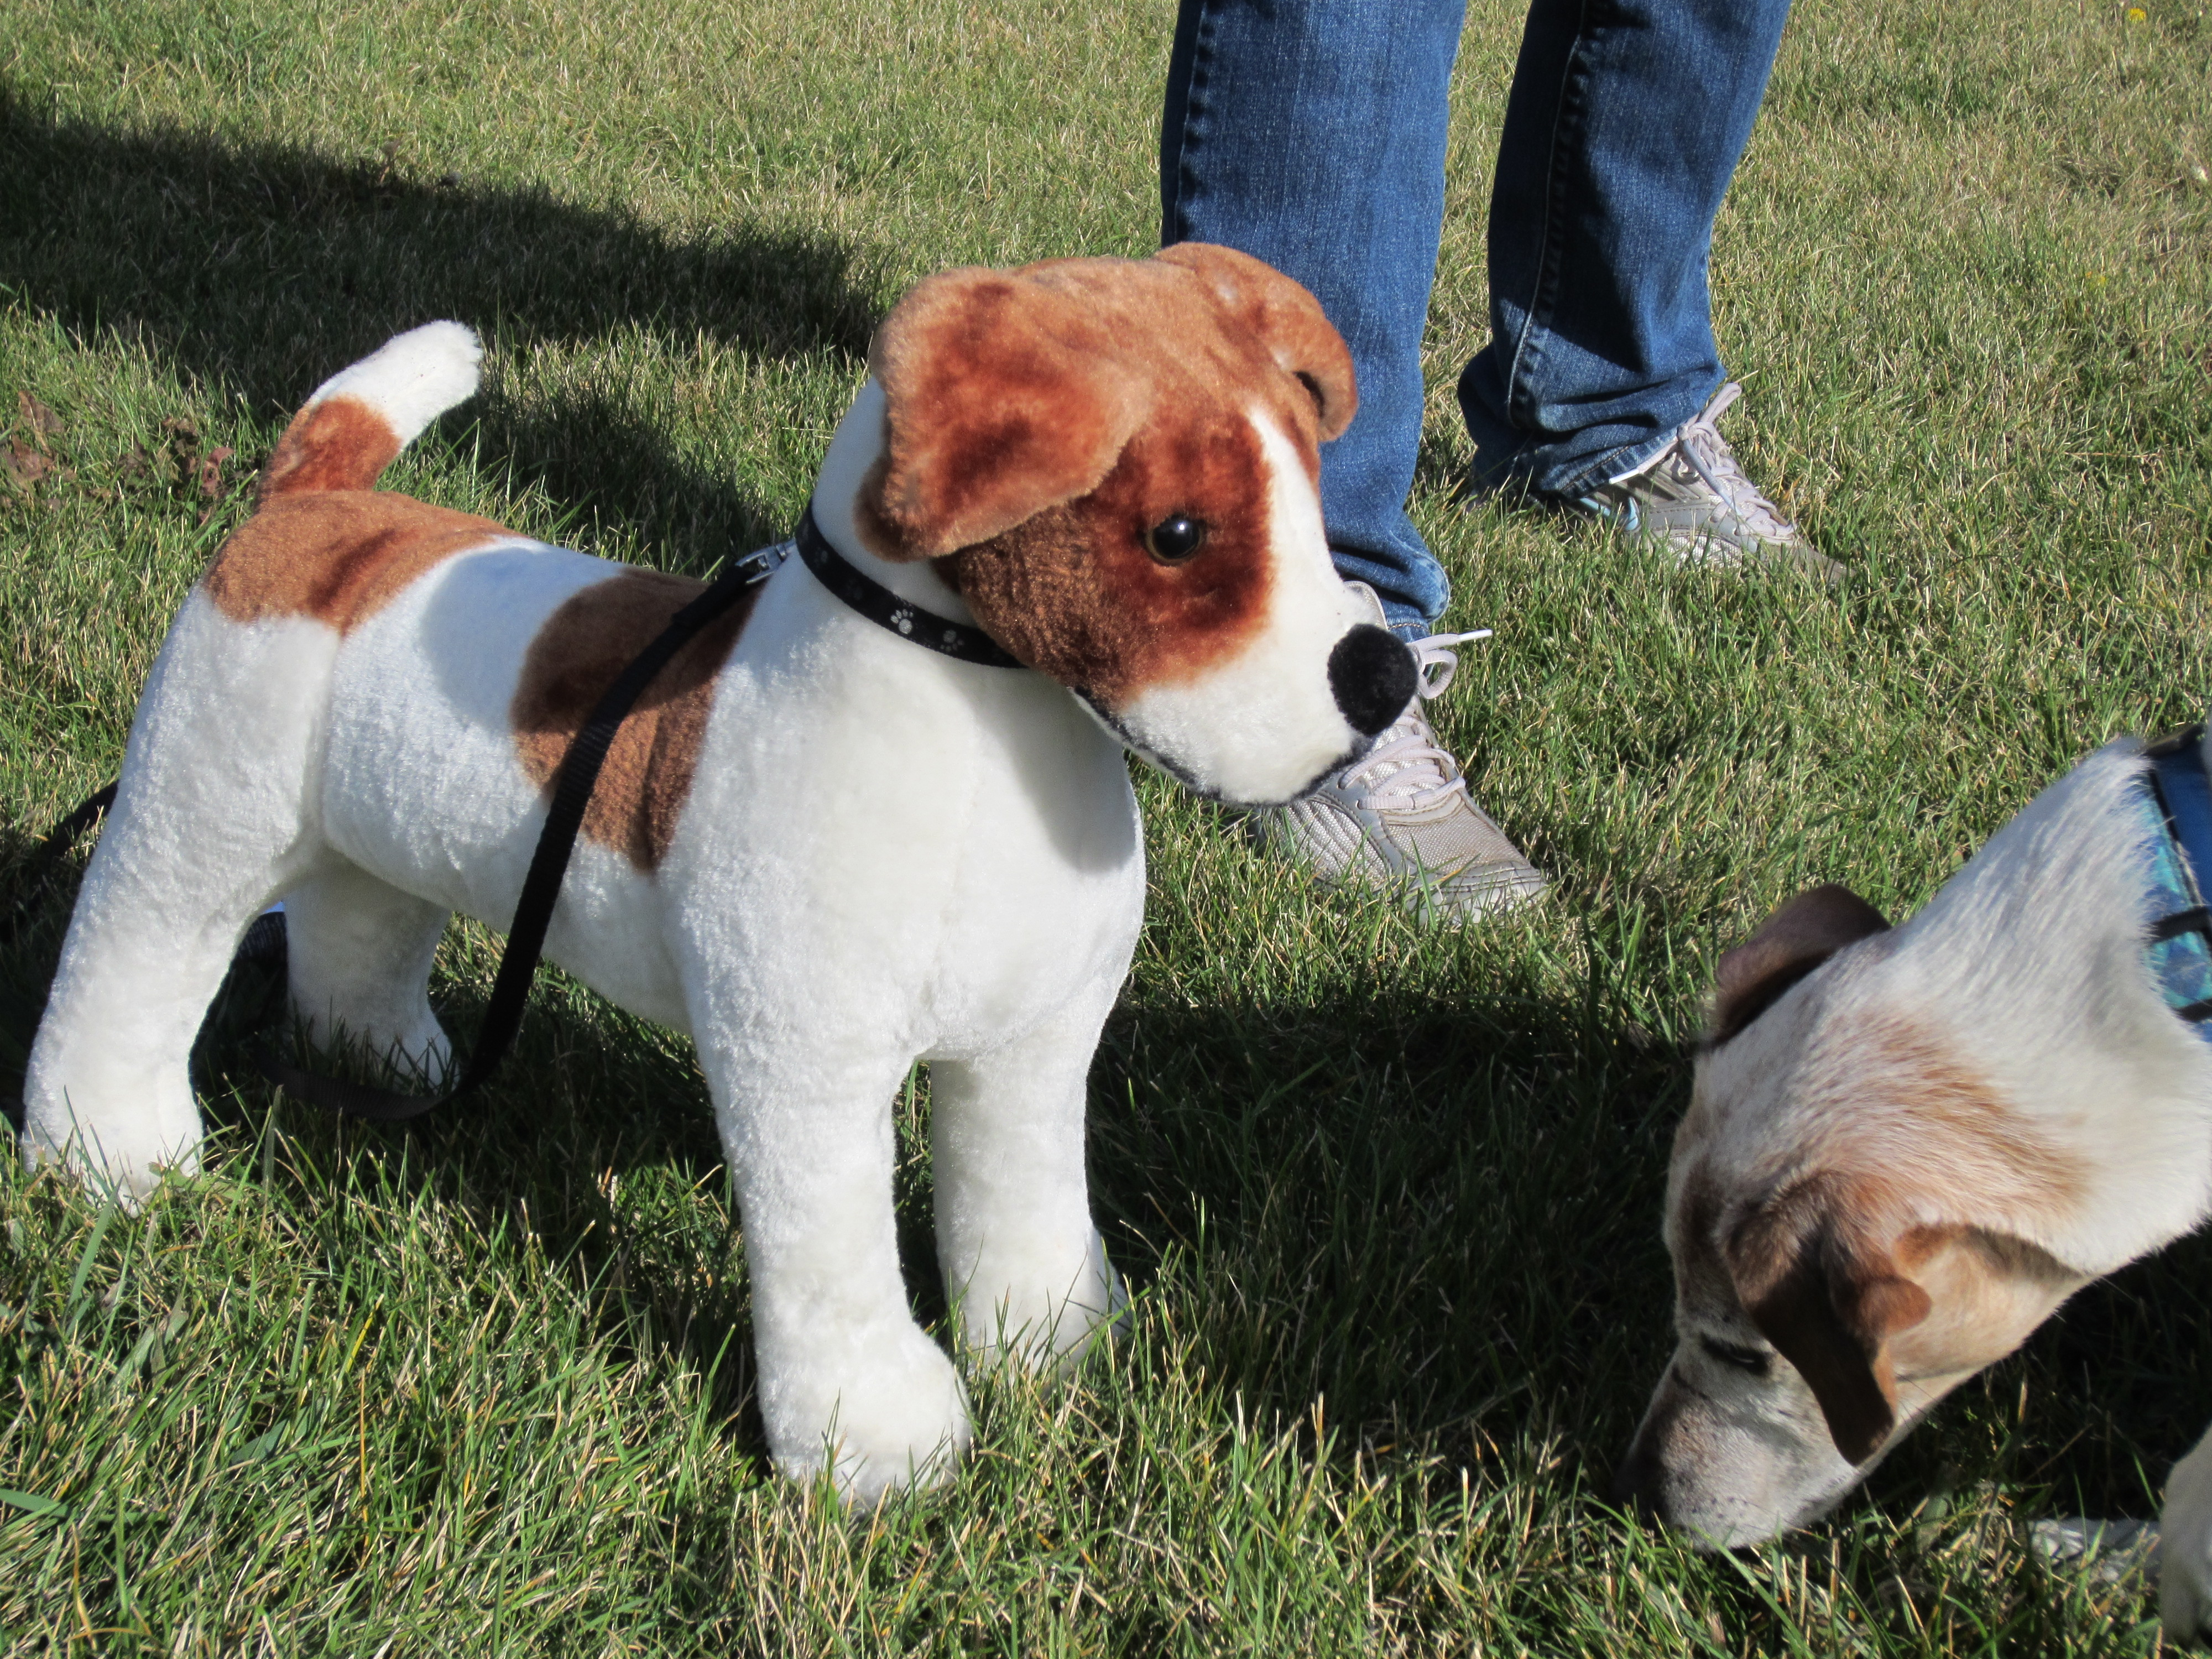 Fake Toy Dogs : Oberhund dedicated to making the world a better place